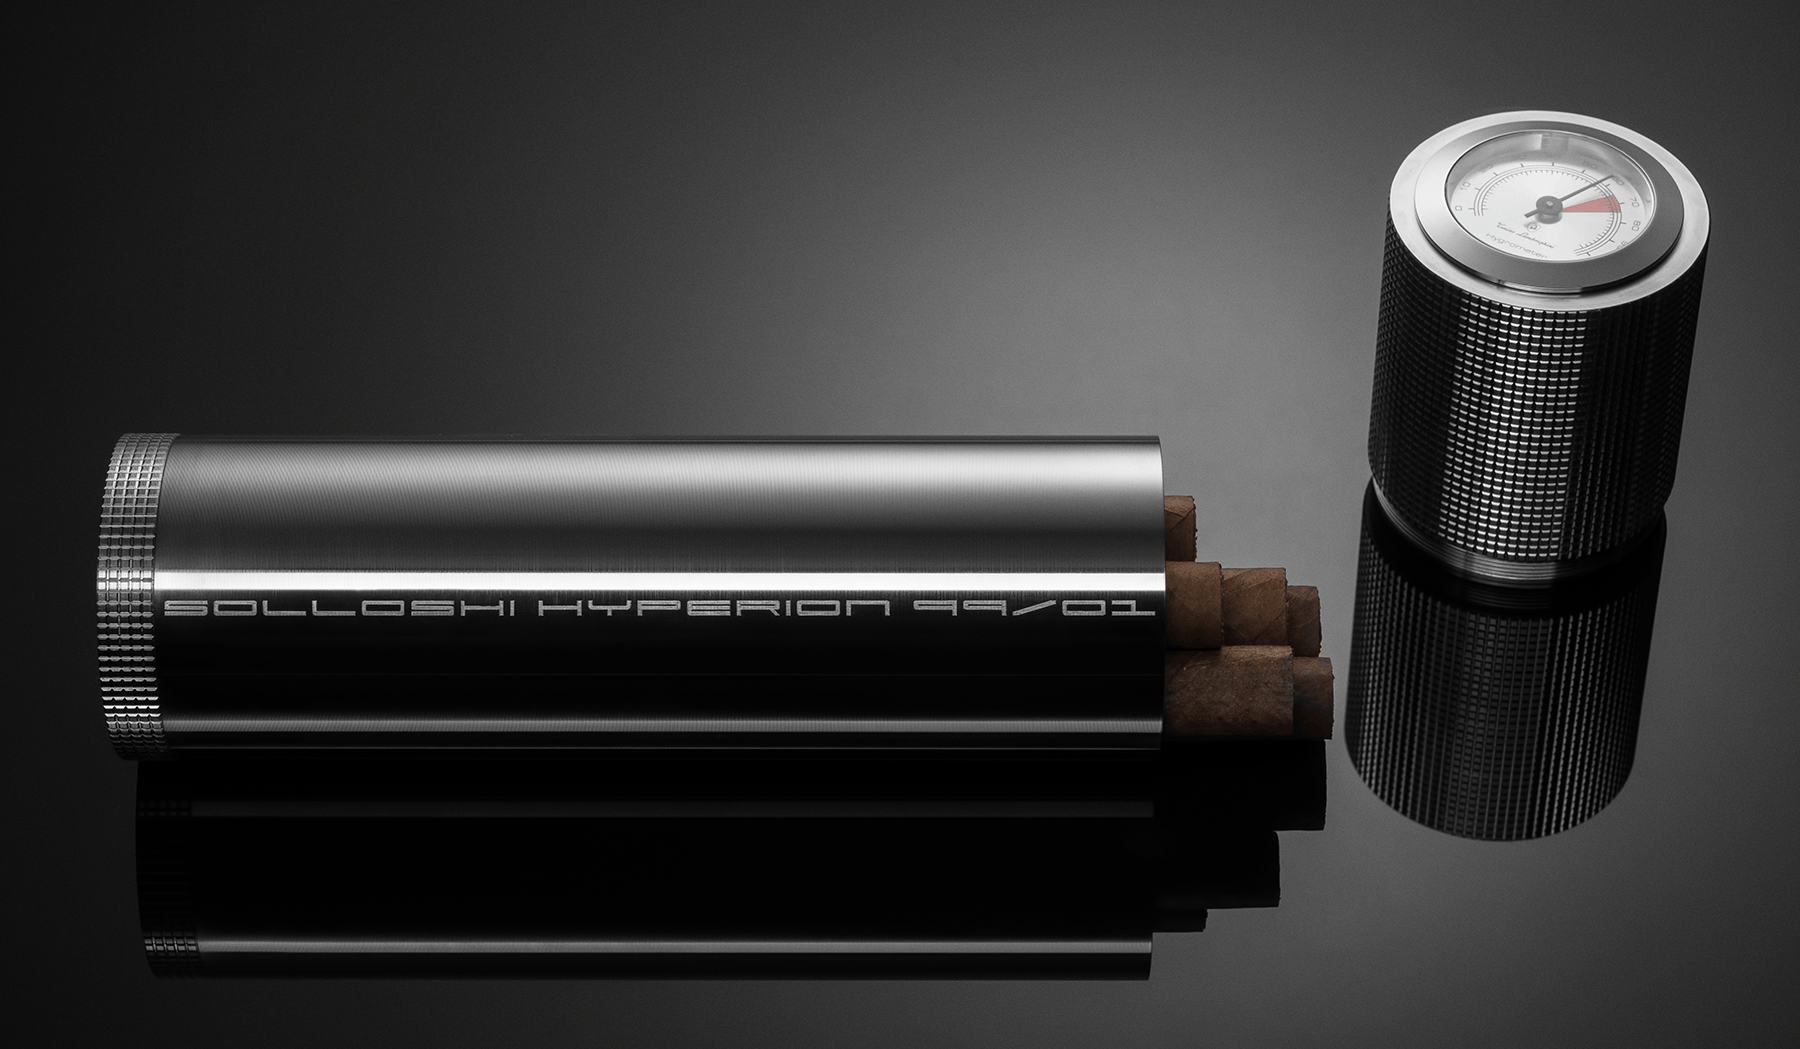 Top 10 Cigar Humidors That You Need to Know